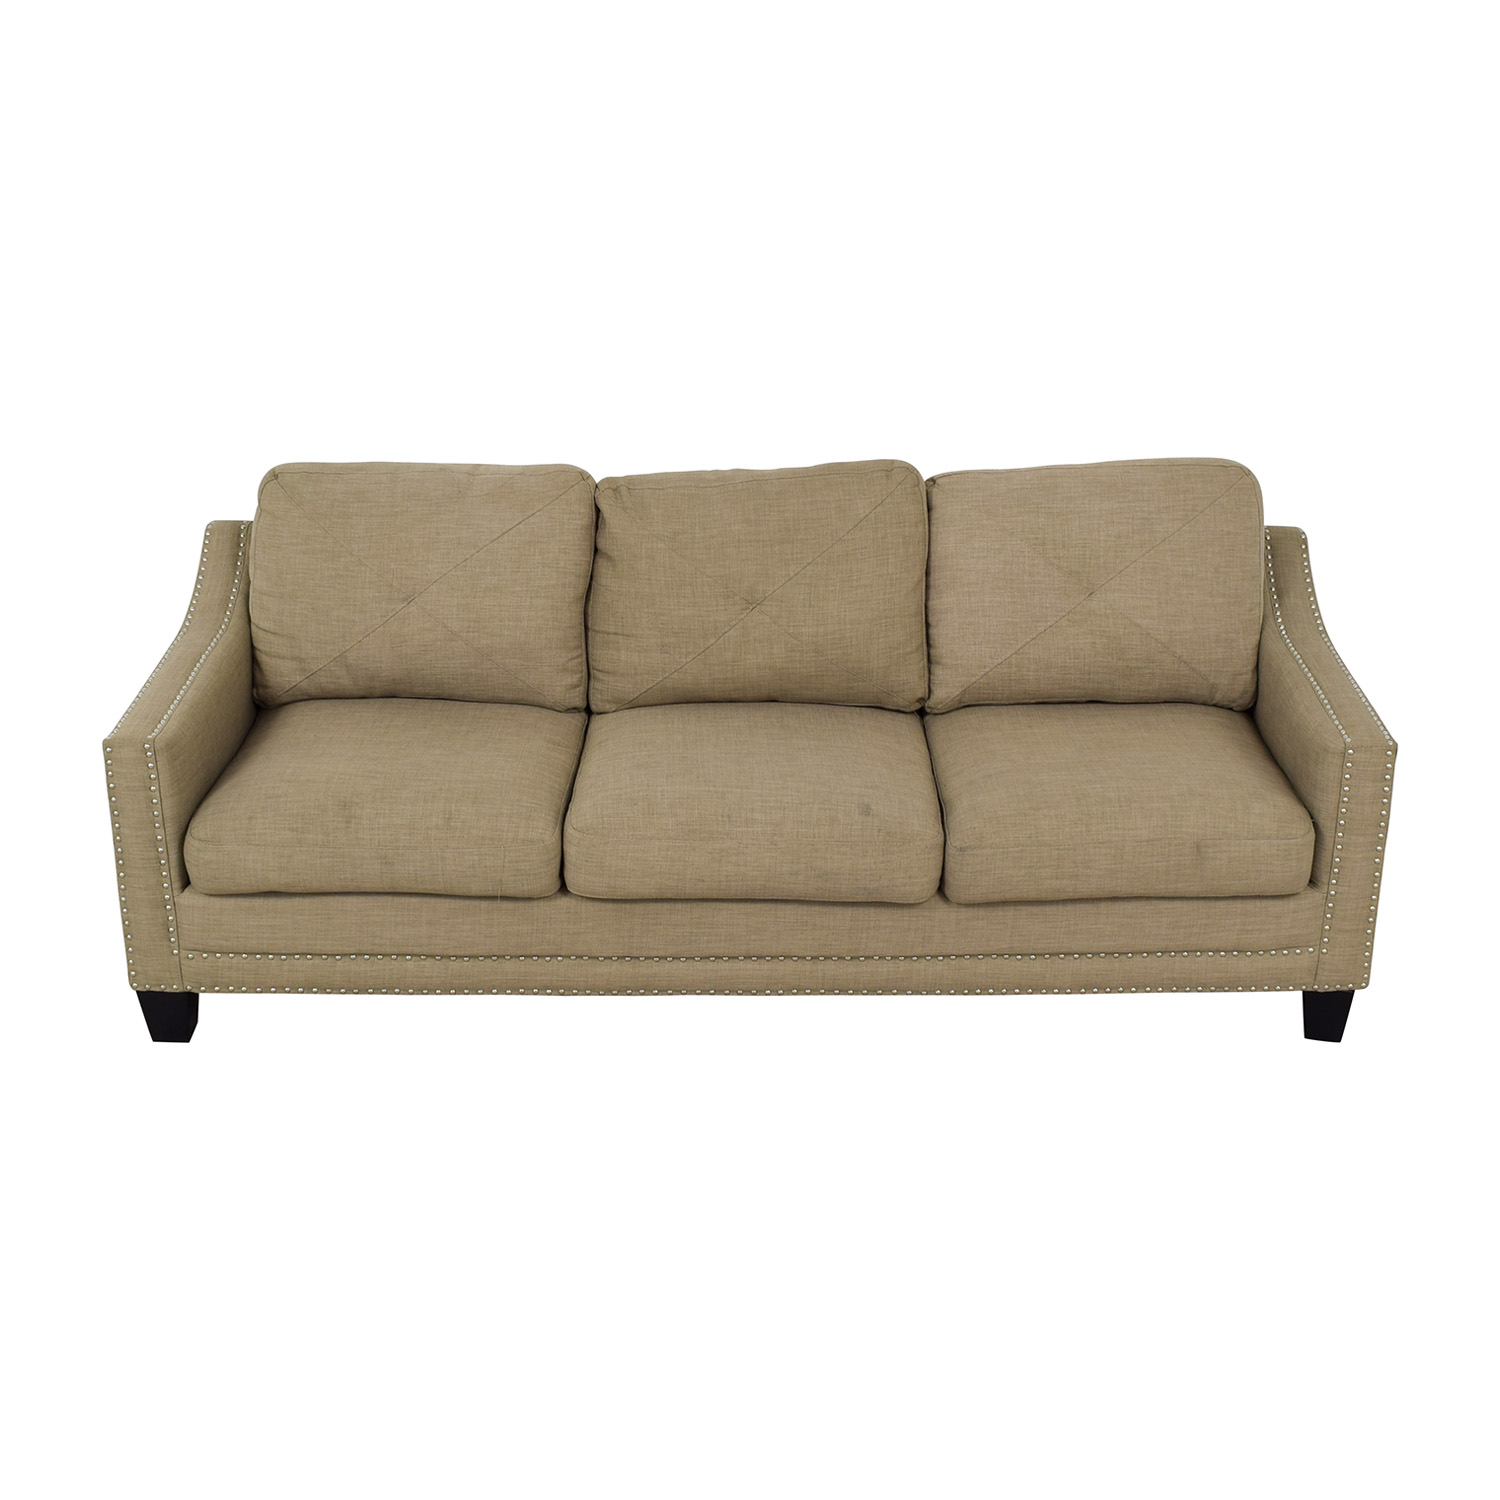 Bob's Discount Furniture Bob's Discount Furniture Three Seater Sofa With Chrome Nailhead Embellishment on sale